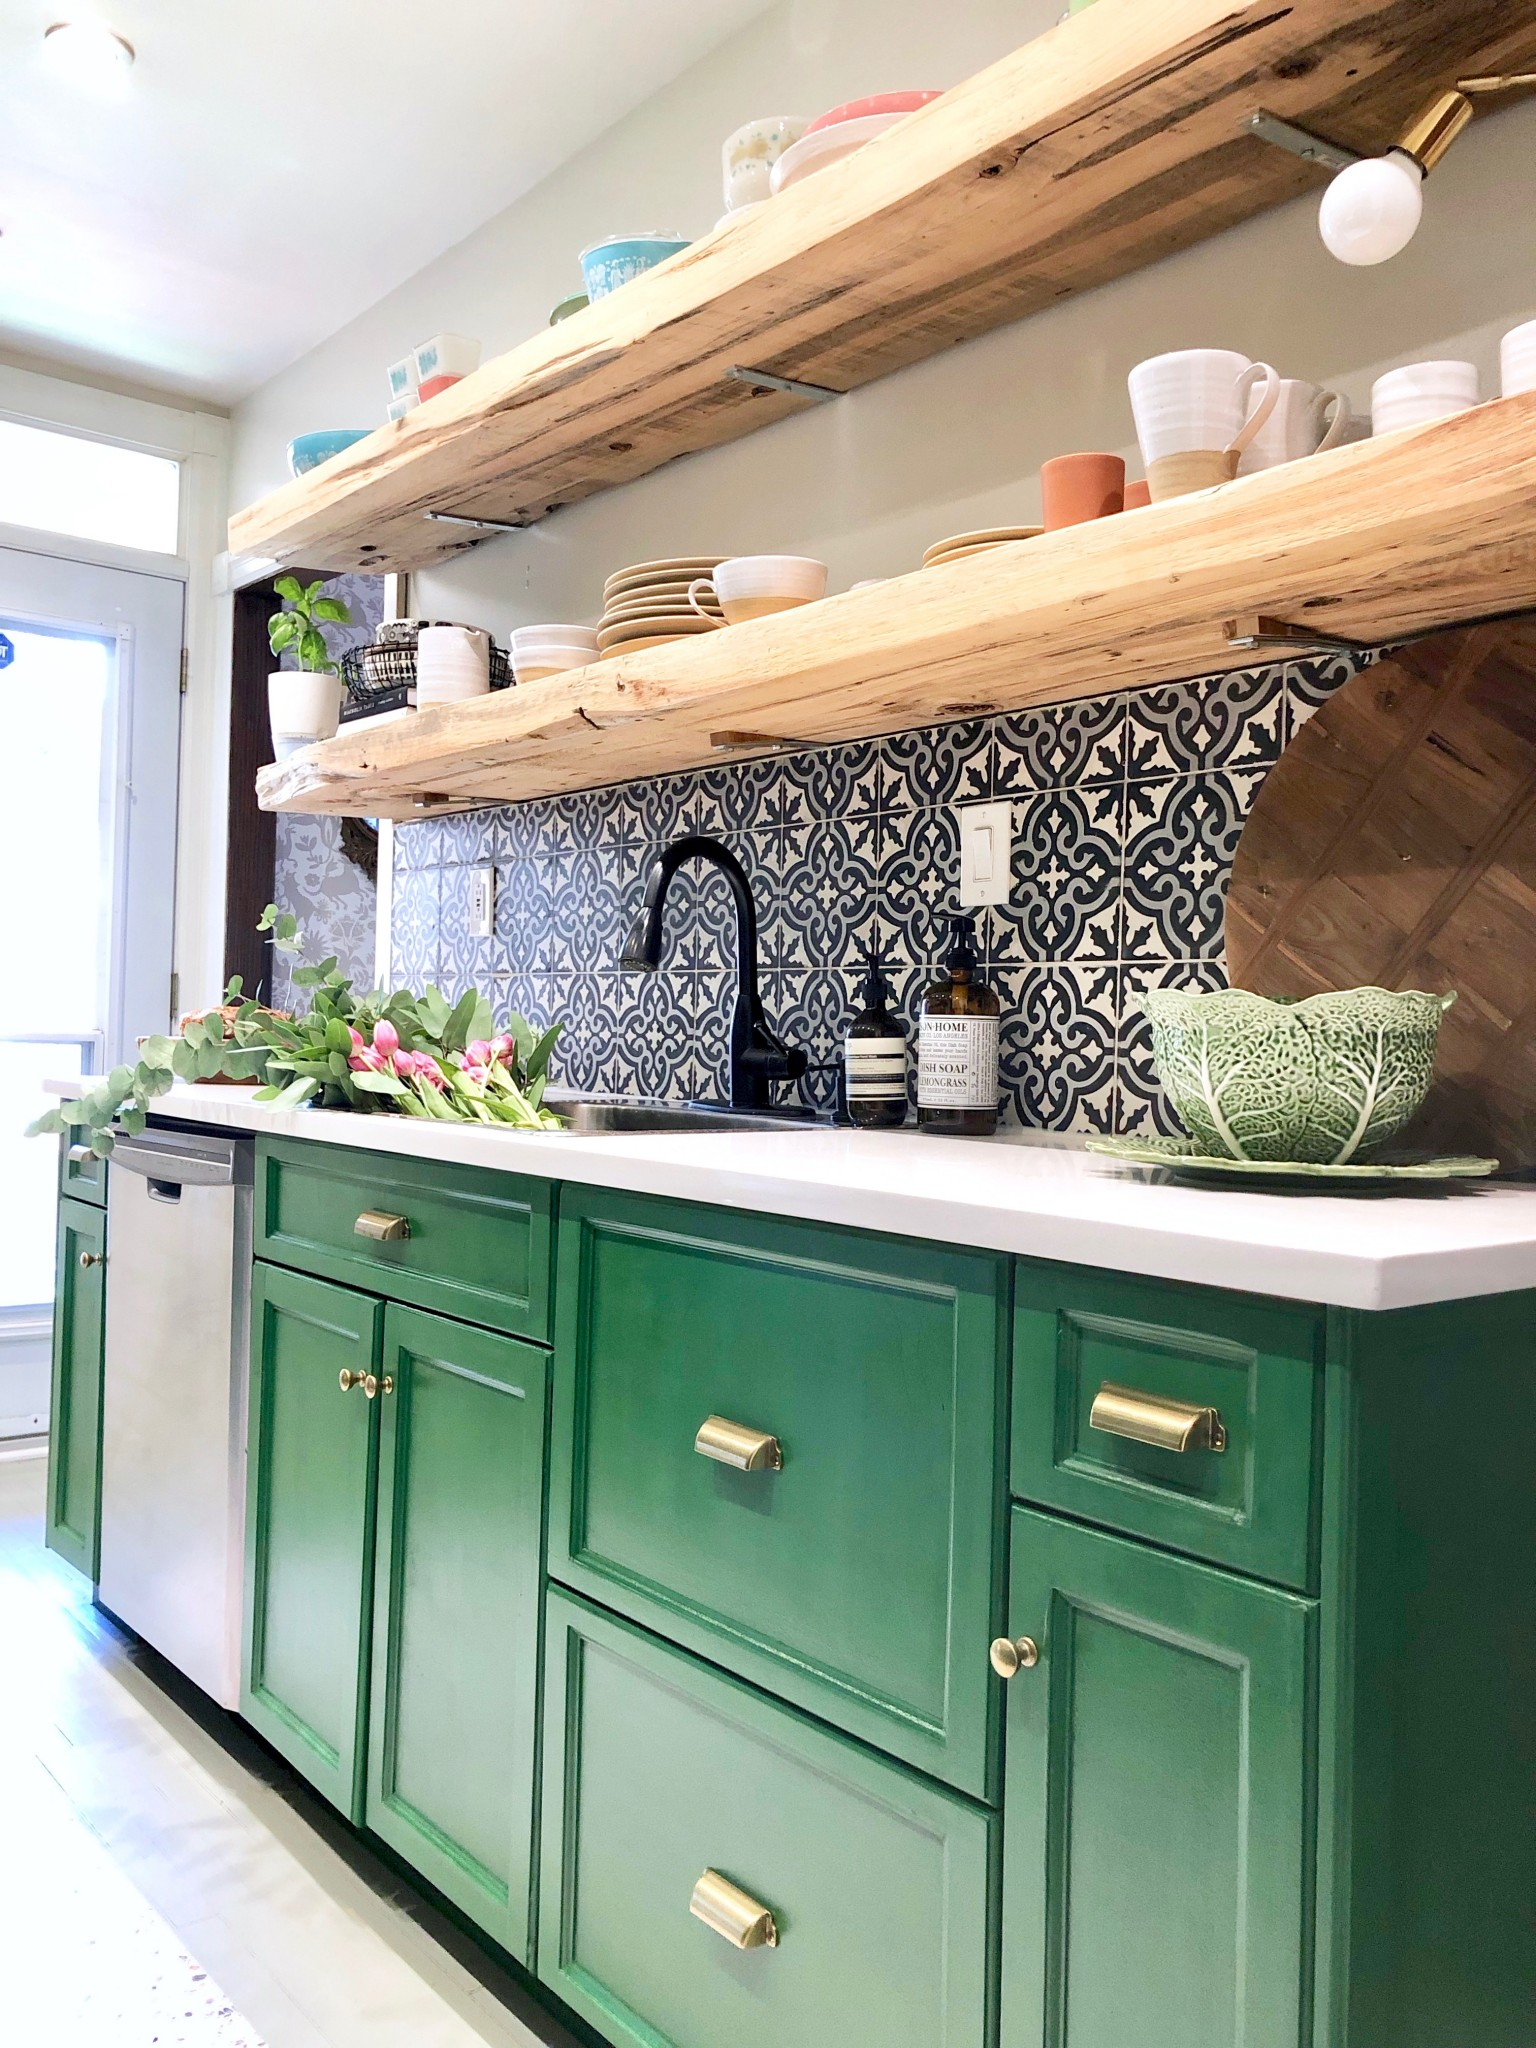 My Kitchen Makeover With The Behr Chalk Decorative Paint